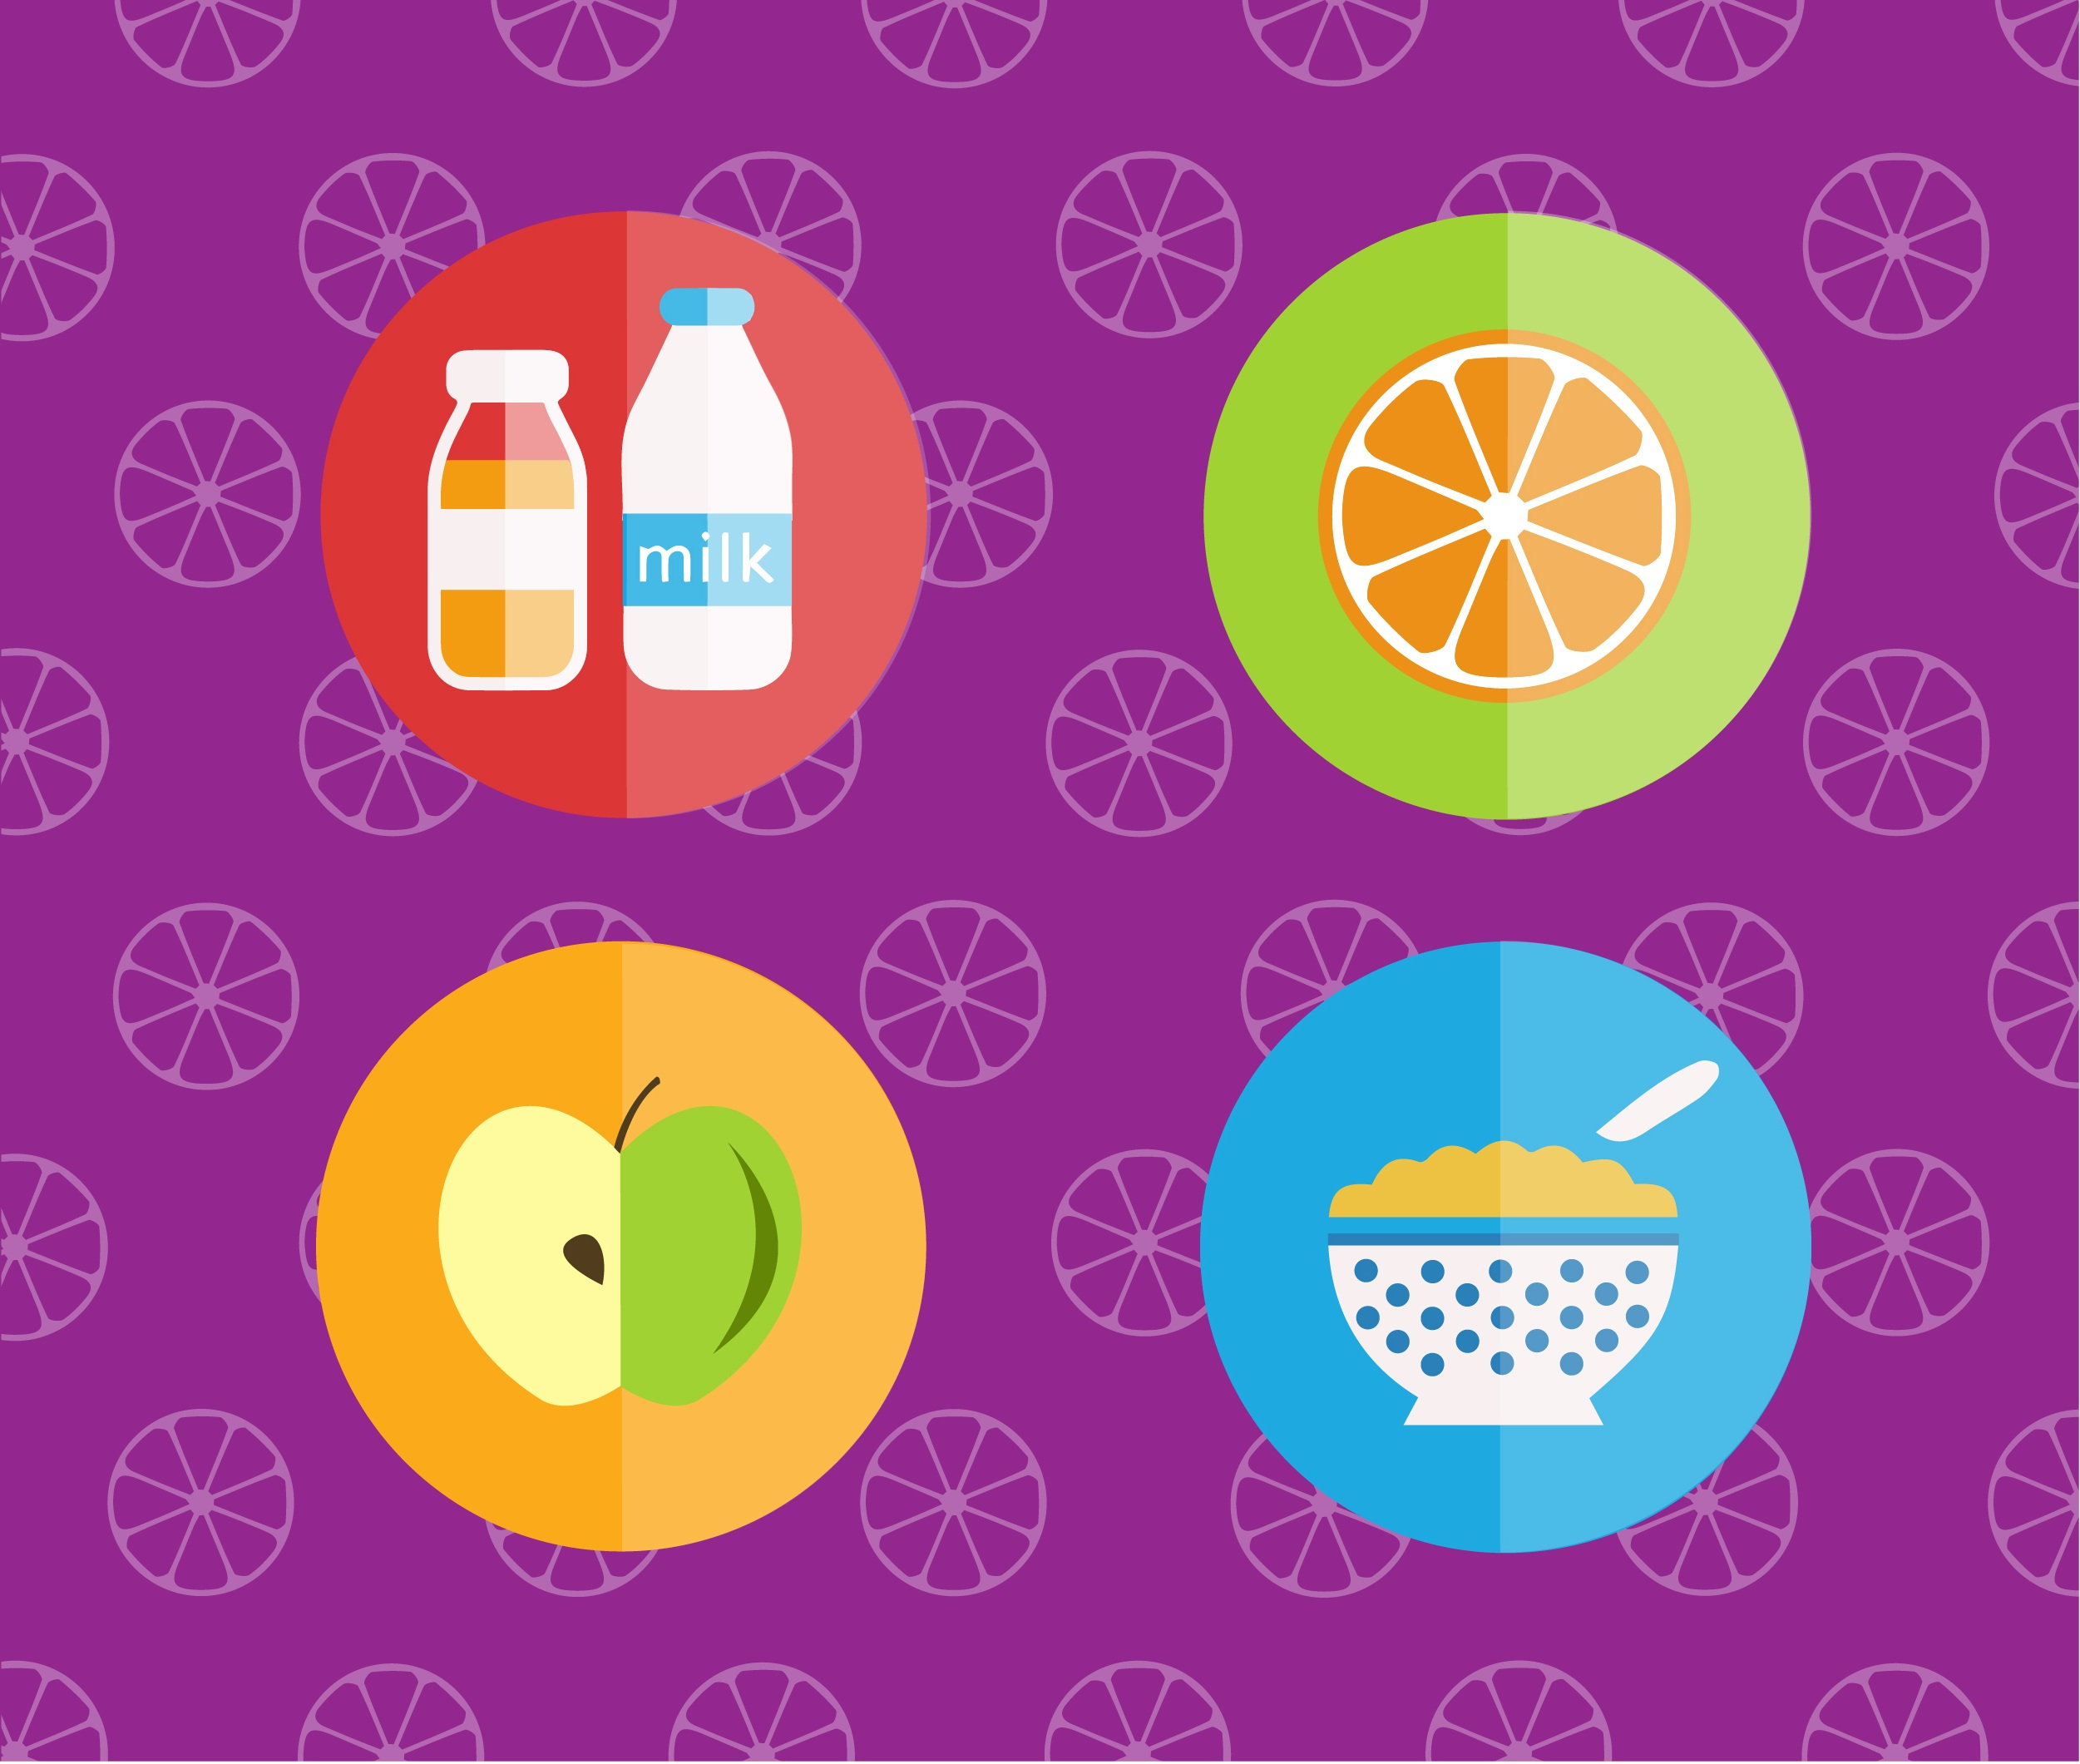 Food objects for edsign. Vector illustrations Photoshop brush